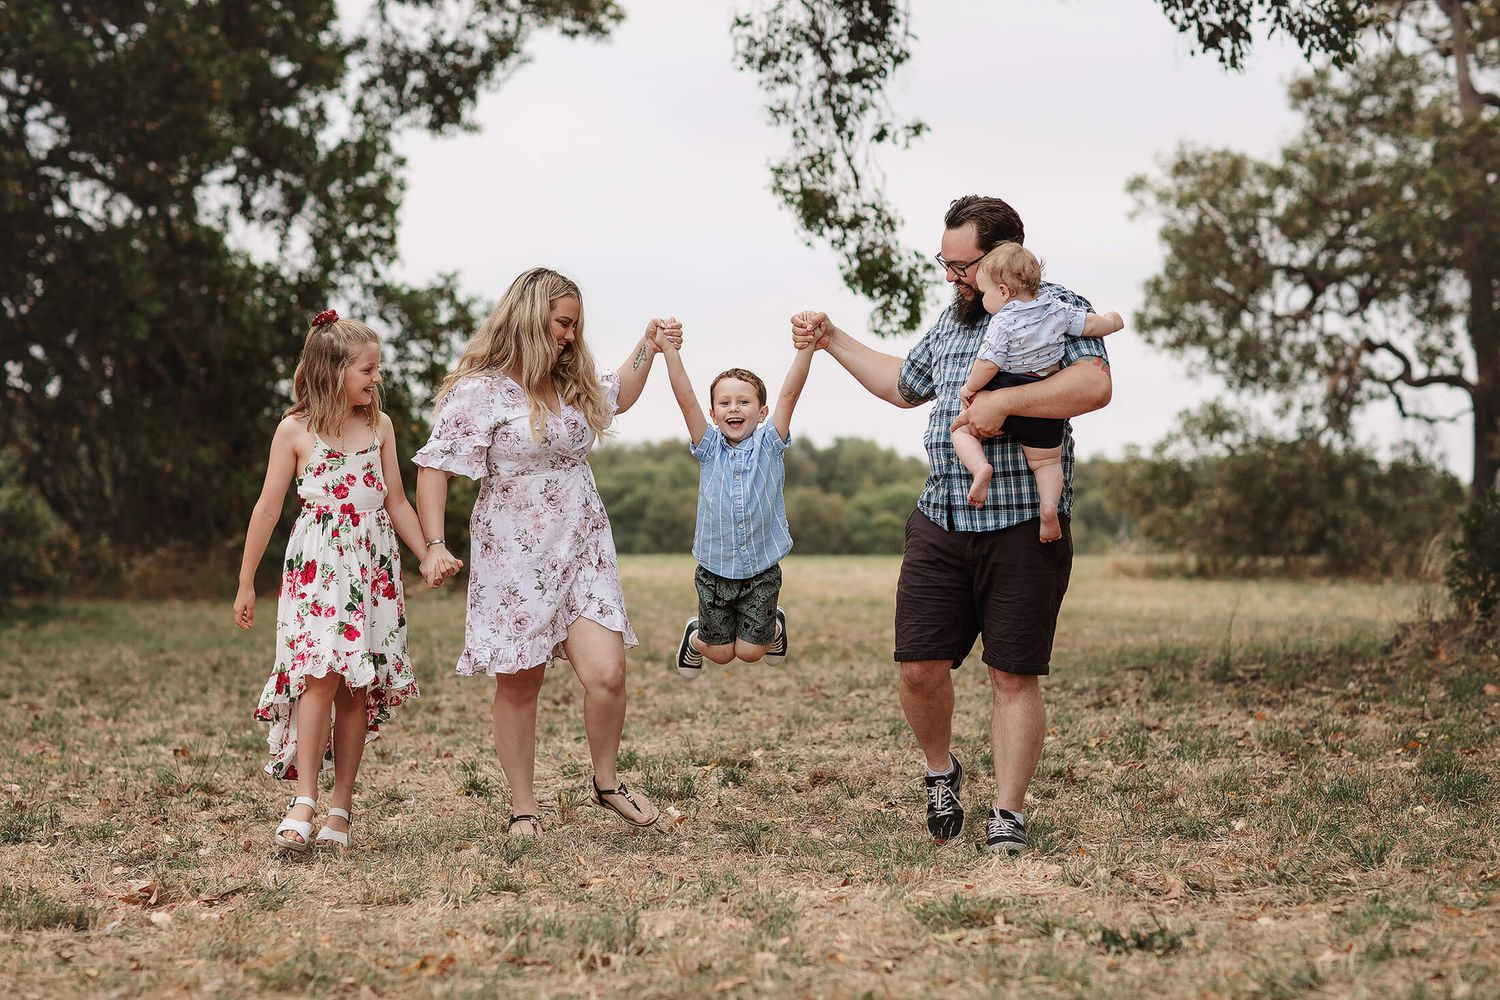 A family of 5 playing in a field at sunset for a family photo shoot in Perth, Western Australia